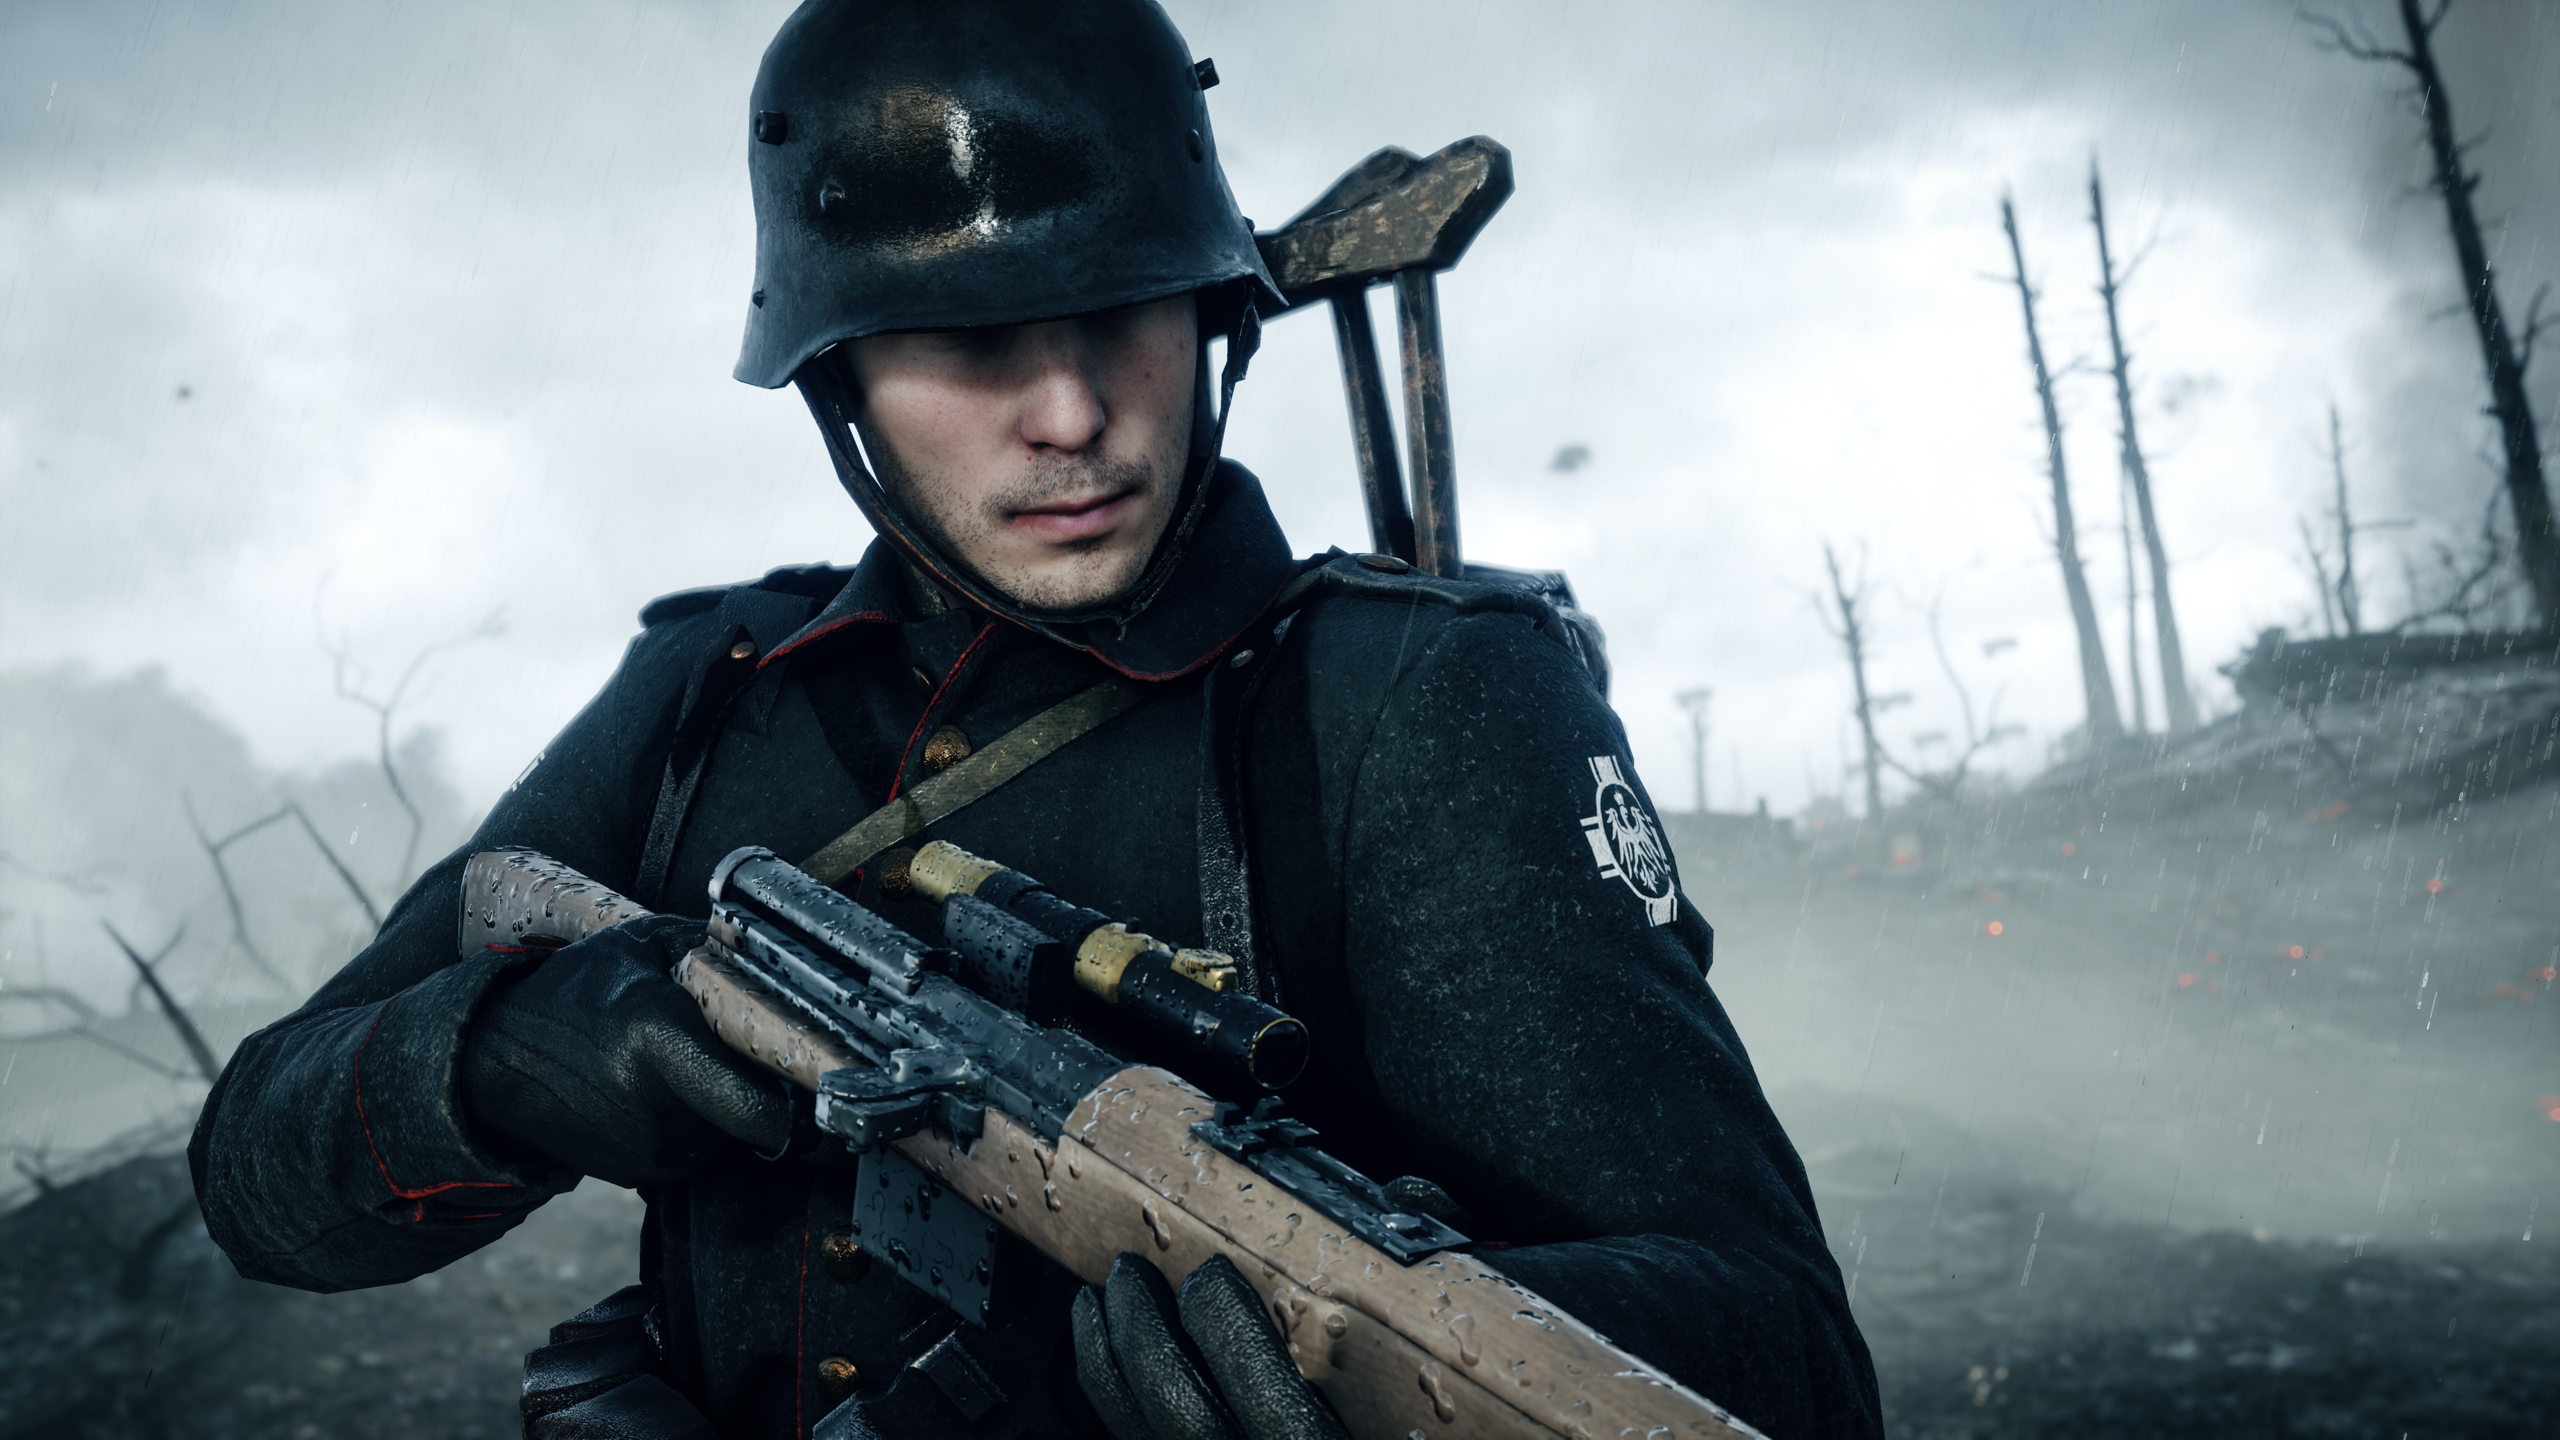 Fall Wallpaper 1440p Battlefield 1 Full Hd Wallpaper And Background Image